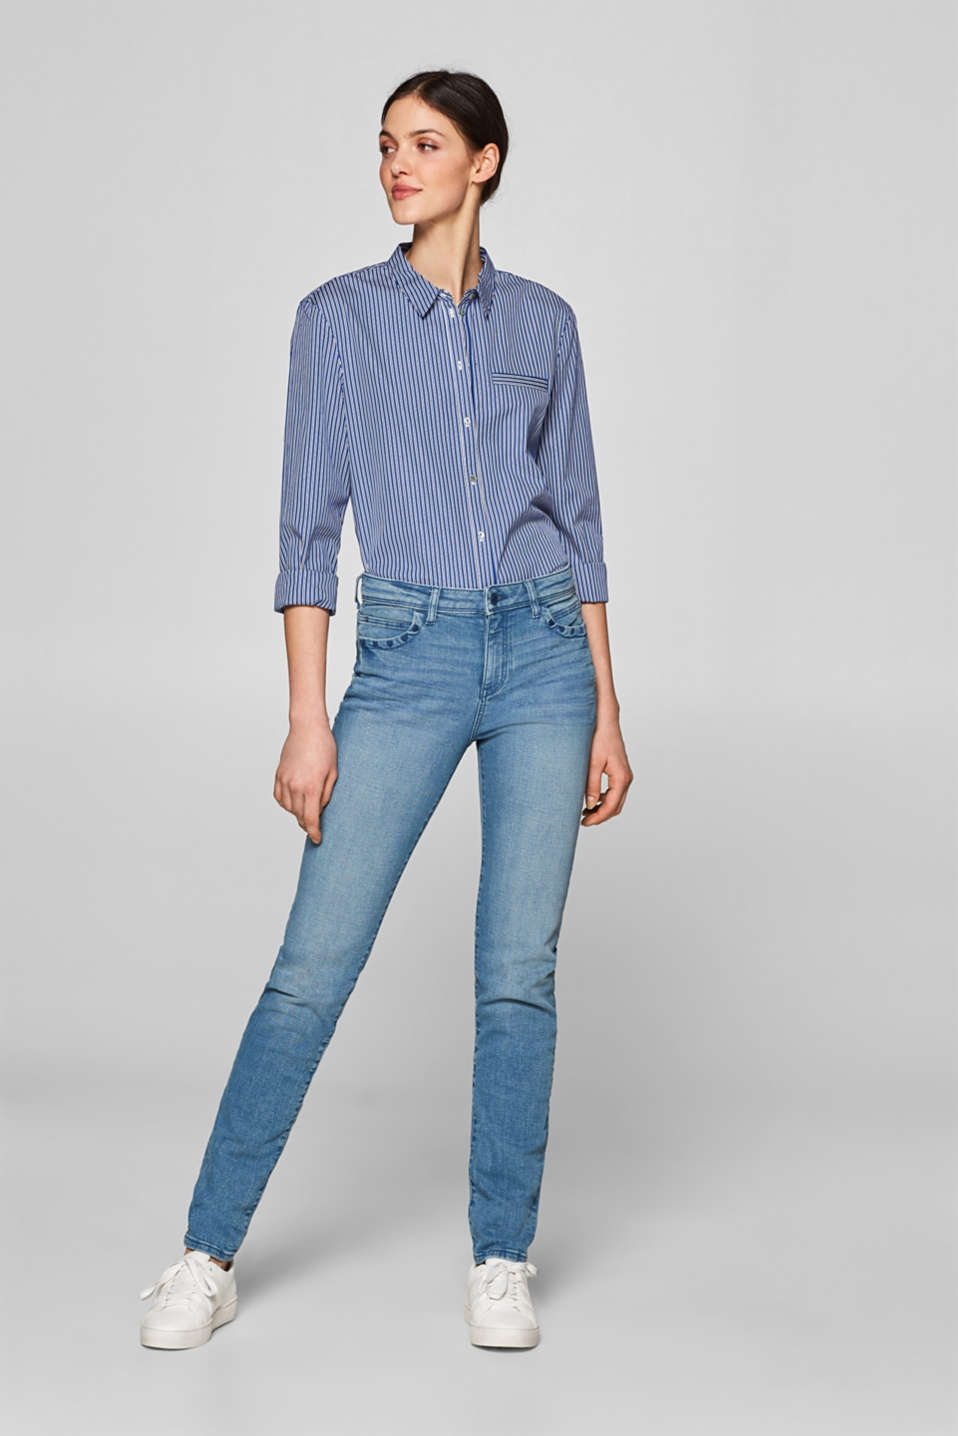 Esprit - Stretch-Jeans mit Herz-Stickerei